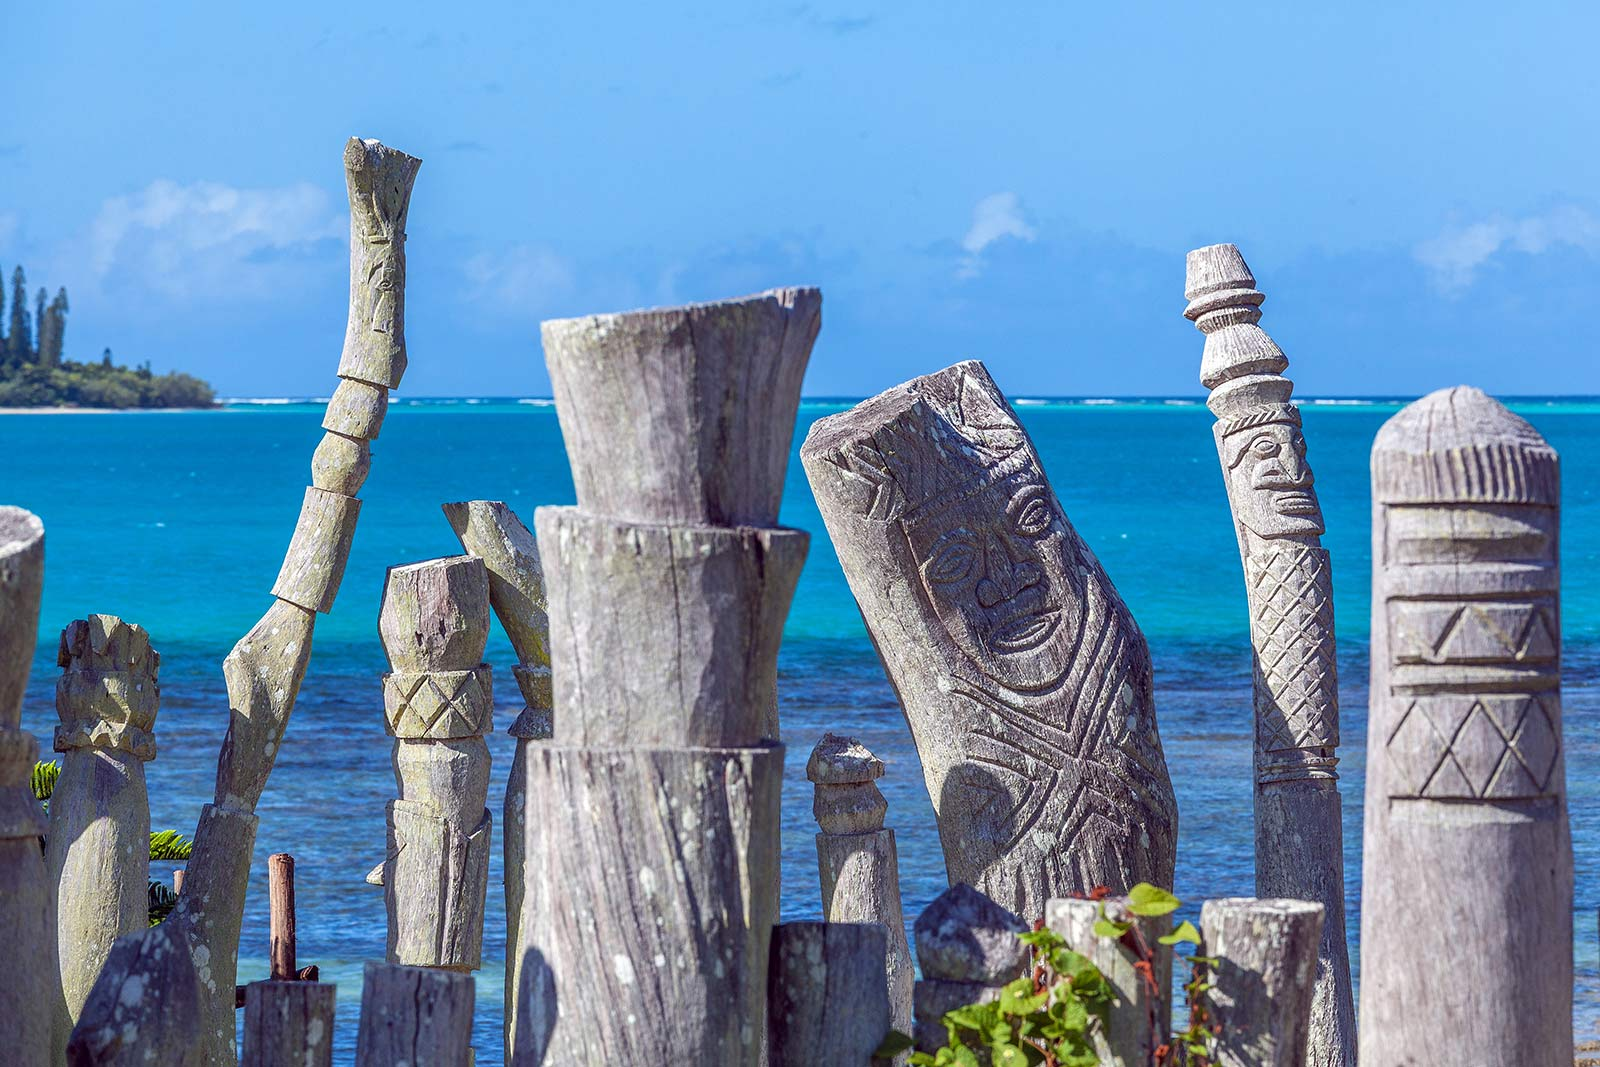 Isle of Pines totems in New Caledonia